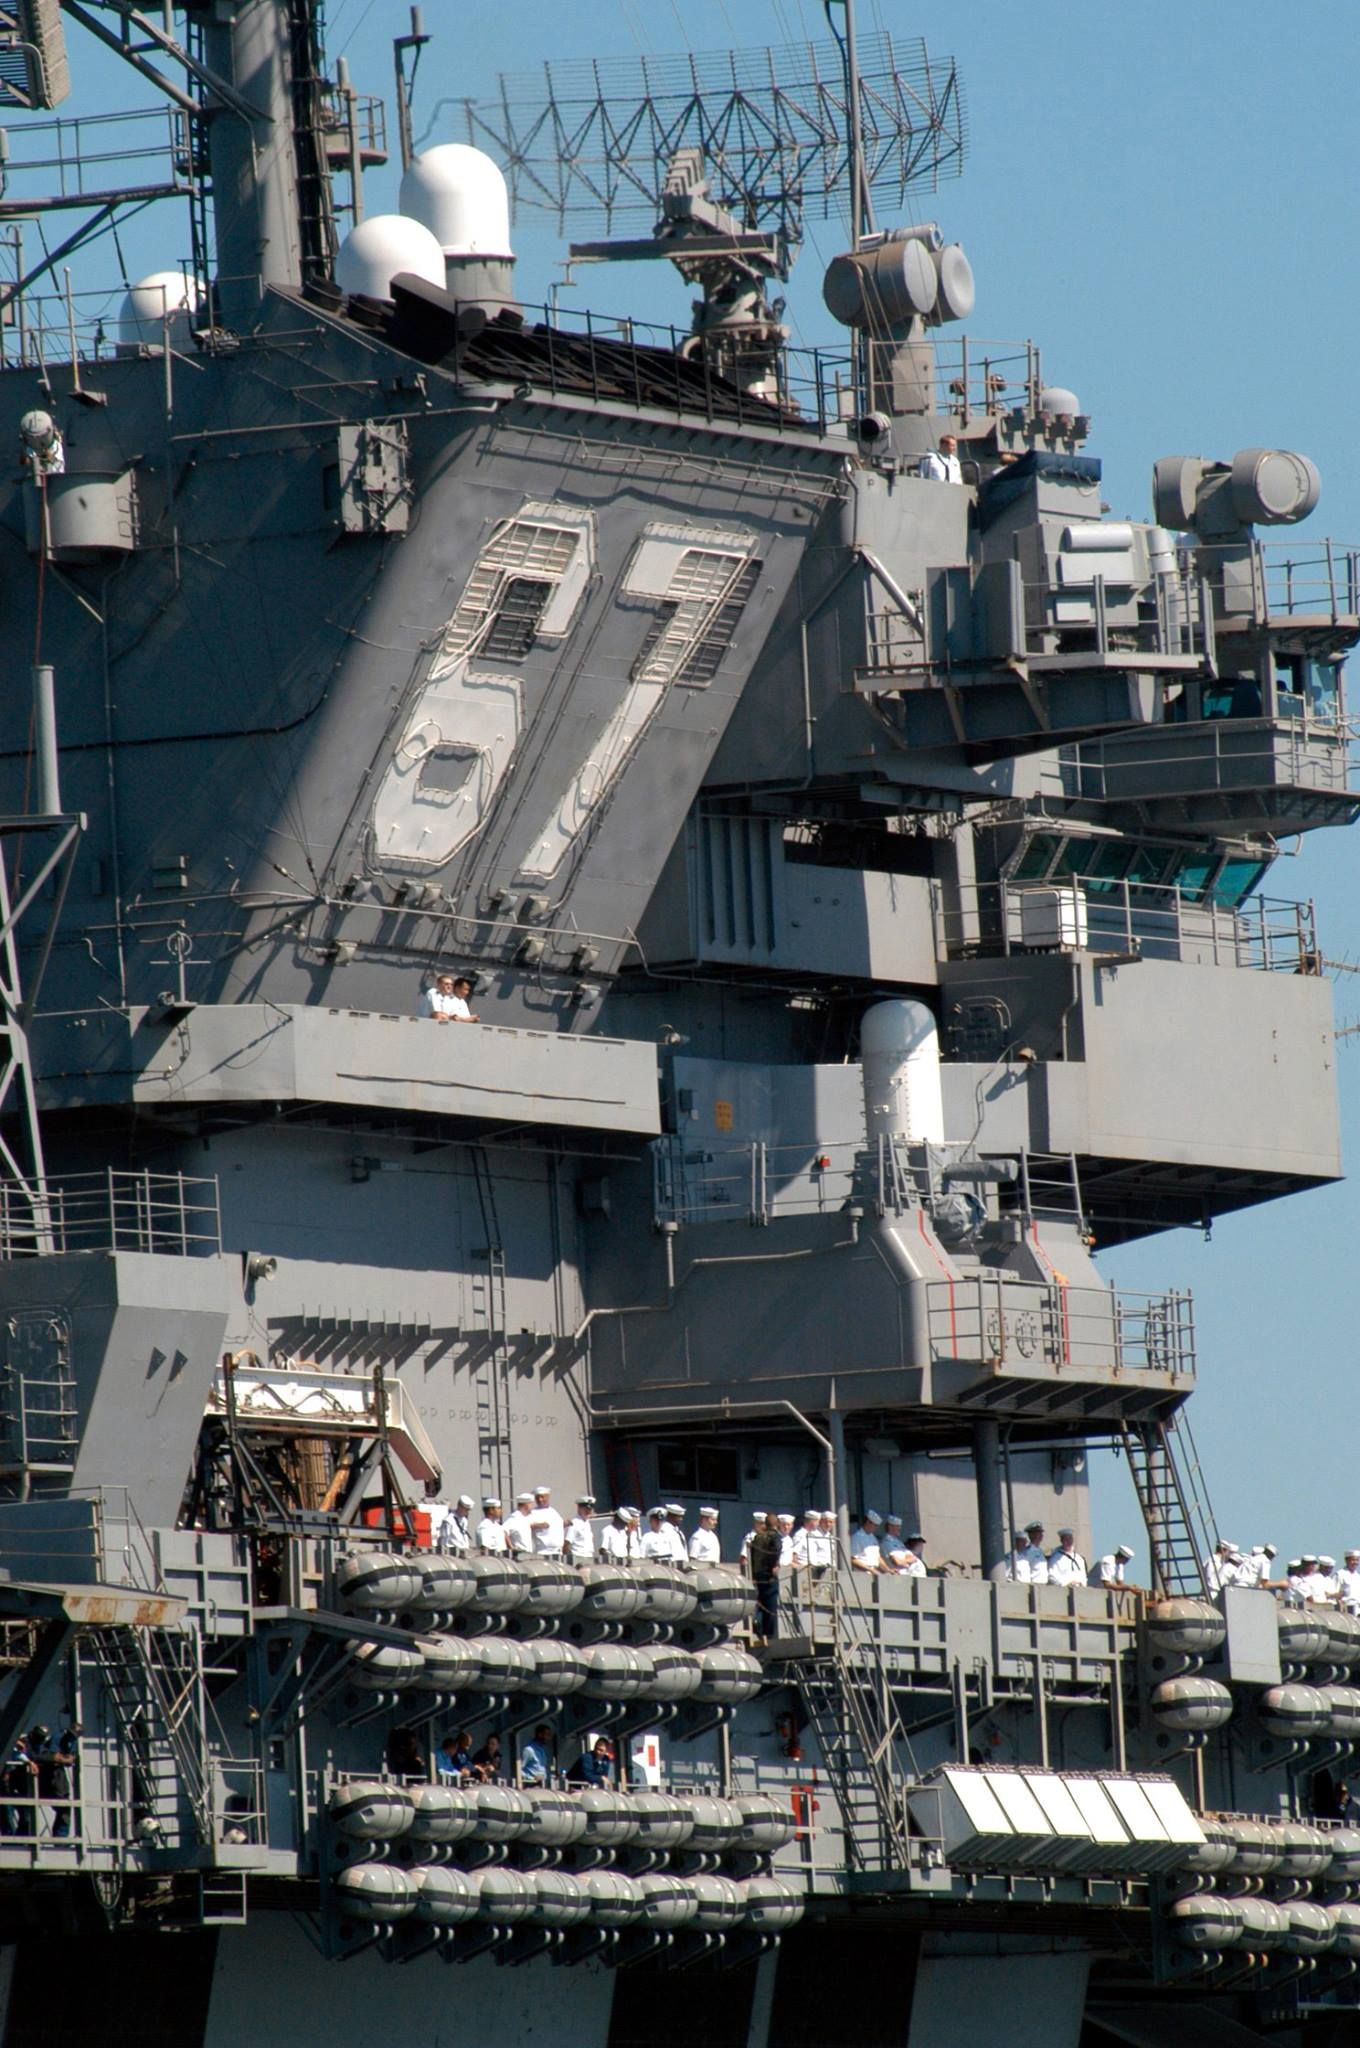 a close up view of the island superstructure aboard u s